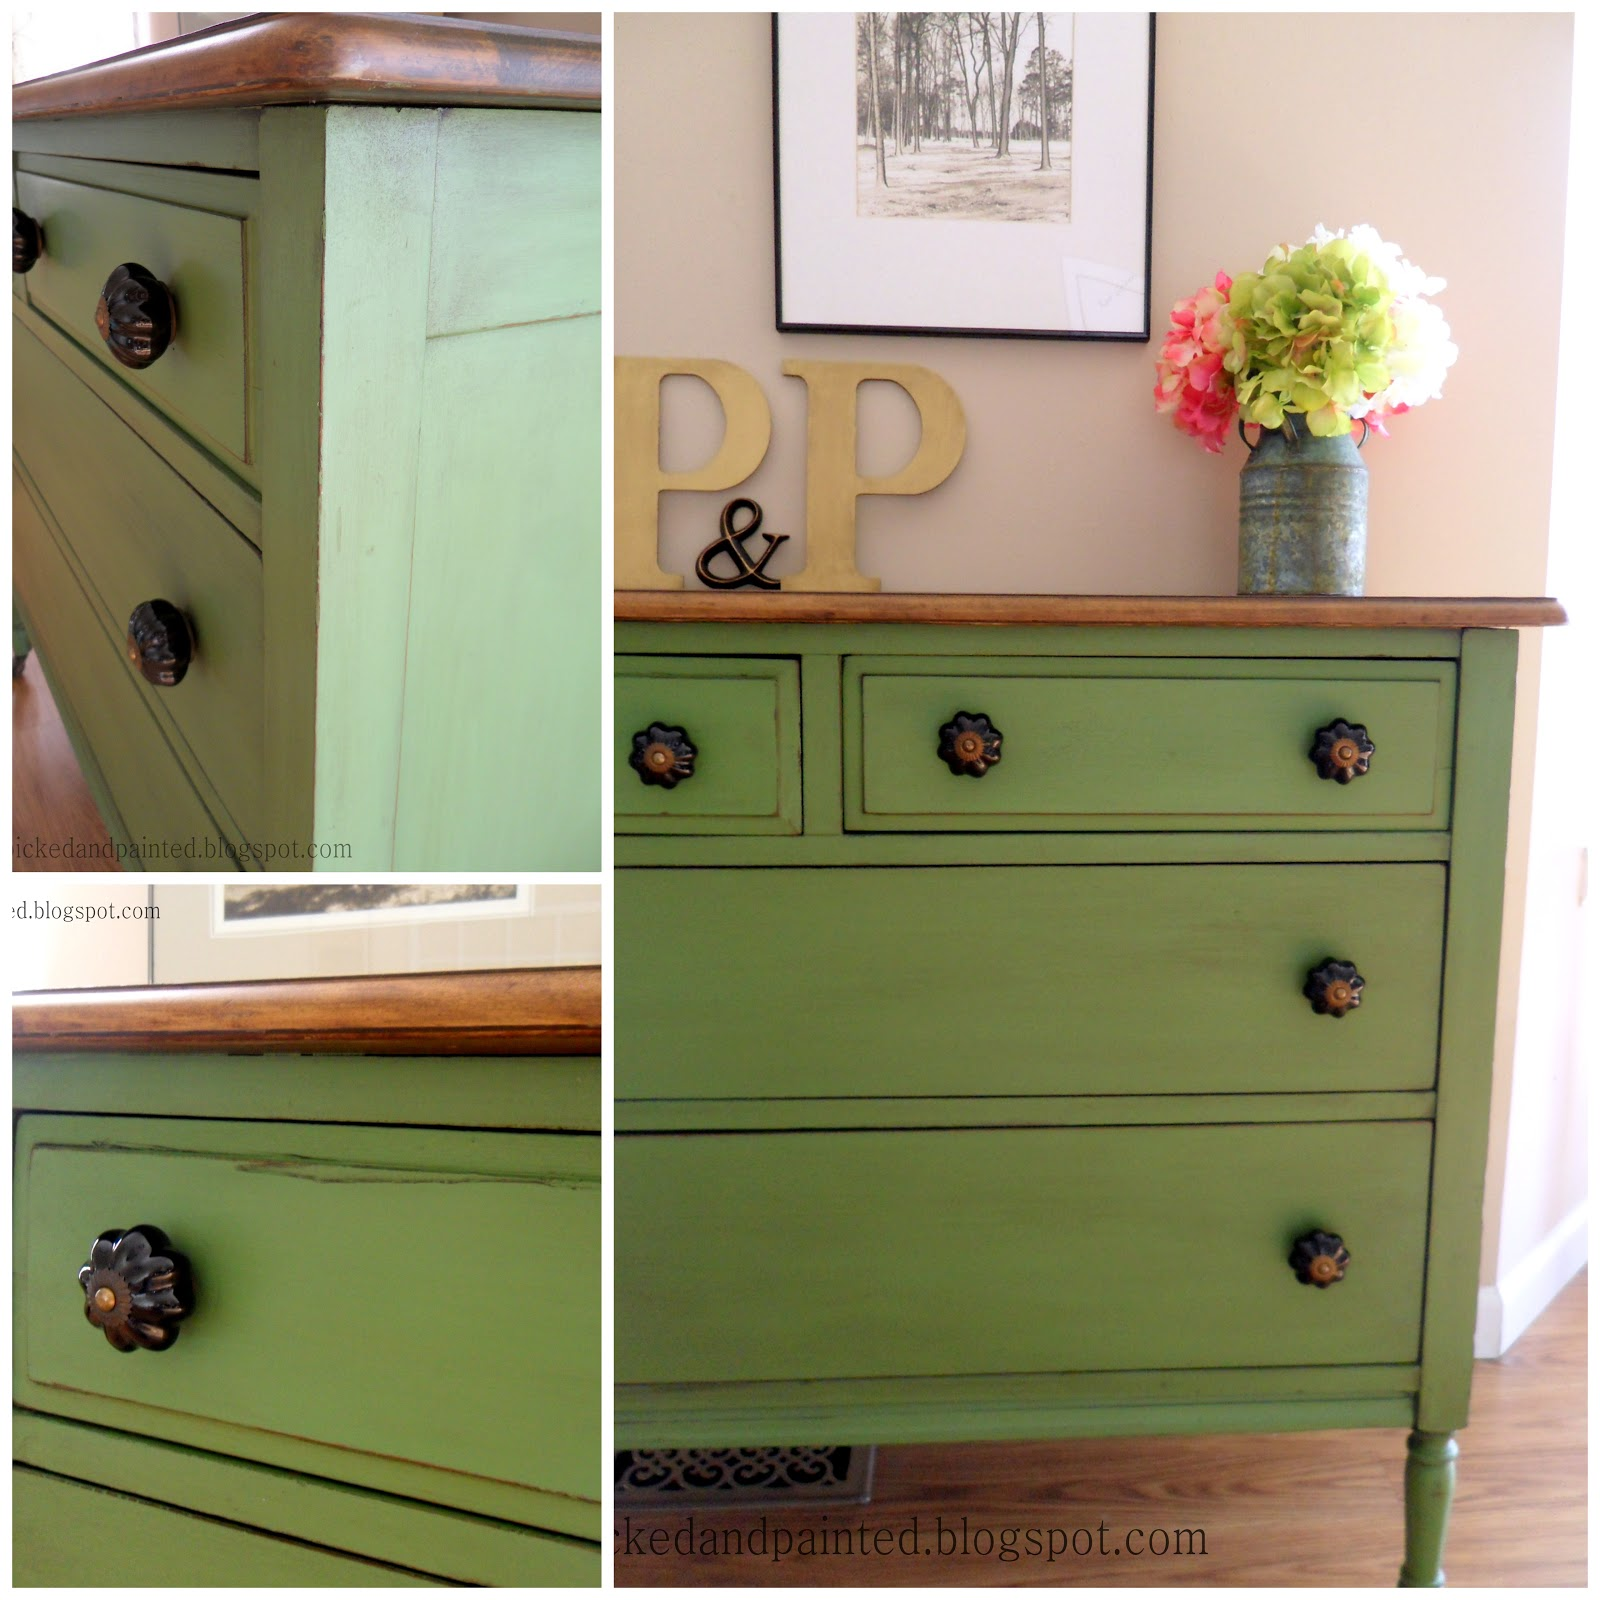 I Used This Same Color On A Table Did For Client Click Here To See That Post And Loved It So Much Wanted Paint Something Else In Green